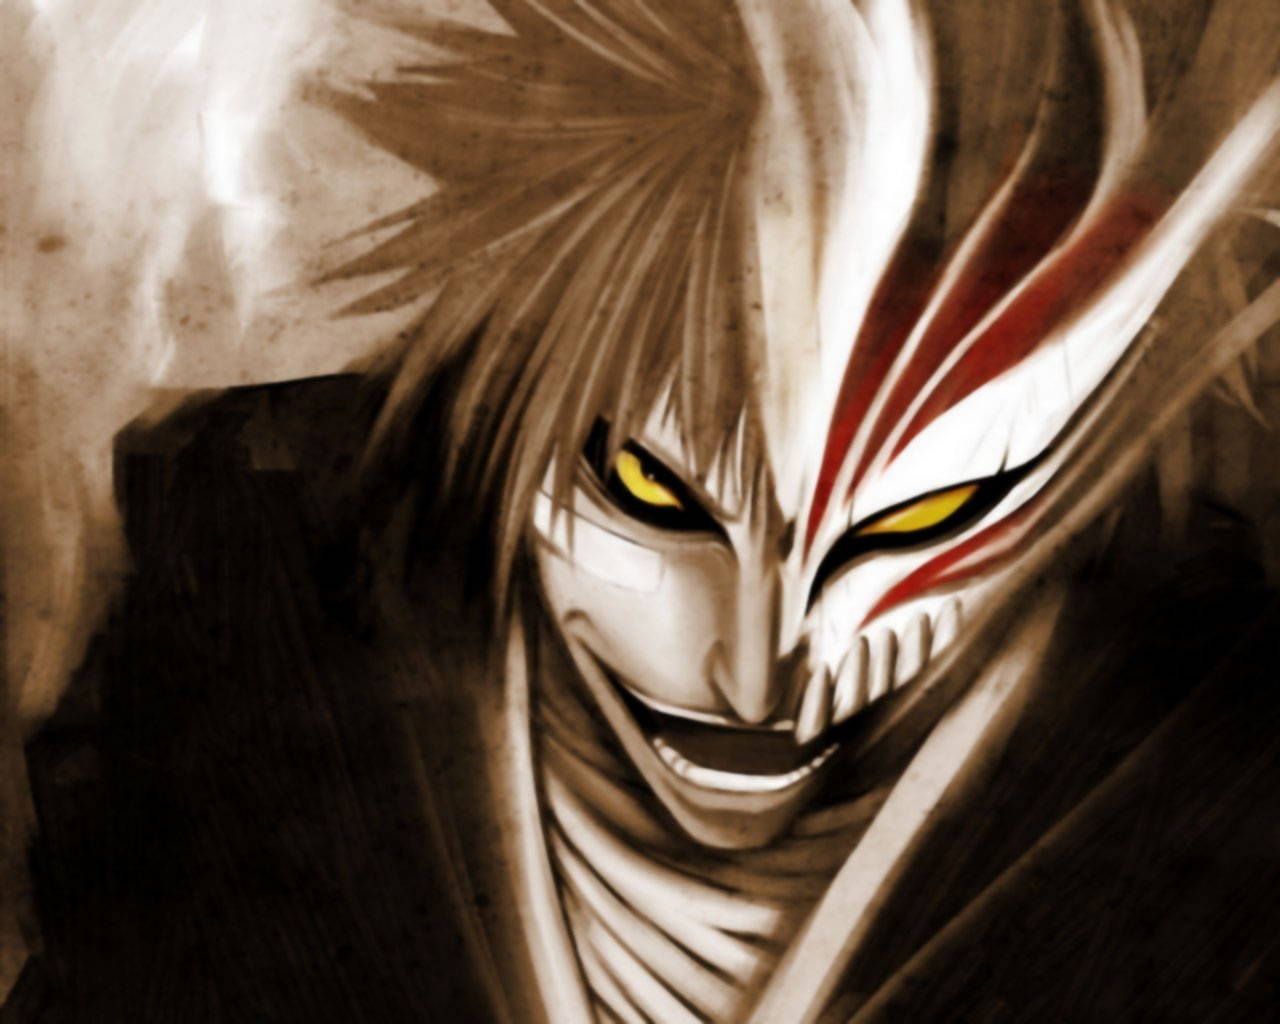 Bleach Ichigo Soul Reaper Close Up